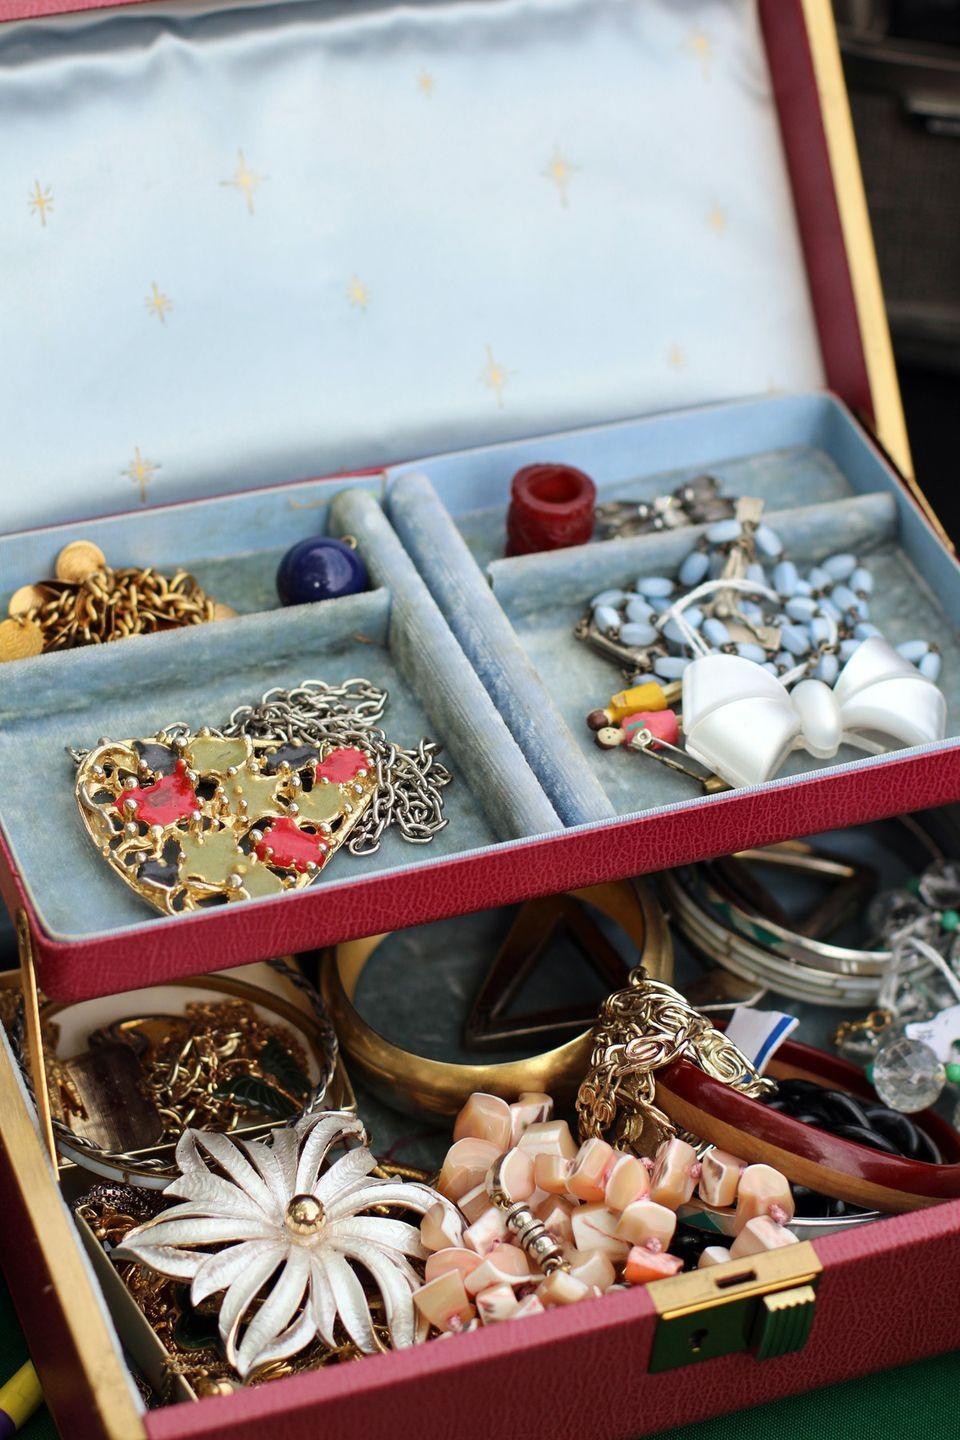 "<p>We're not talking about valuable gems and jewelry made from precious metals, but the cheaper pieces that are usually <a href=""https://www.goodhousekeeping.com/home/cleaning/a37670/mistakes-ruining-your-jewelry/"" rel=""nofollow noopener"" target=""_blank"" data-ylk=""slk:made of plastic"" class=""link rapid-noclick-resp"">made of plastic</a>. Maybe it was a gift. Maybe it was a bargain too good to pass up. But if you don't wear it, send it off to the donation pile.</p>"